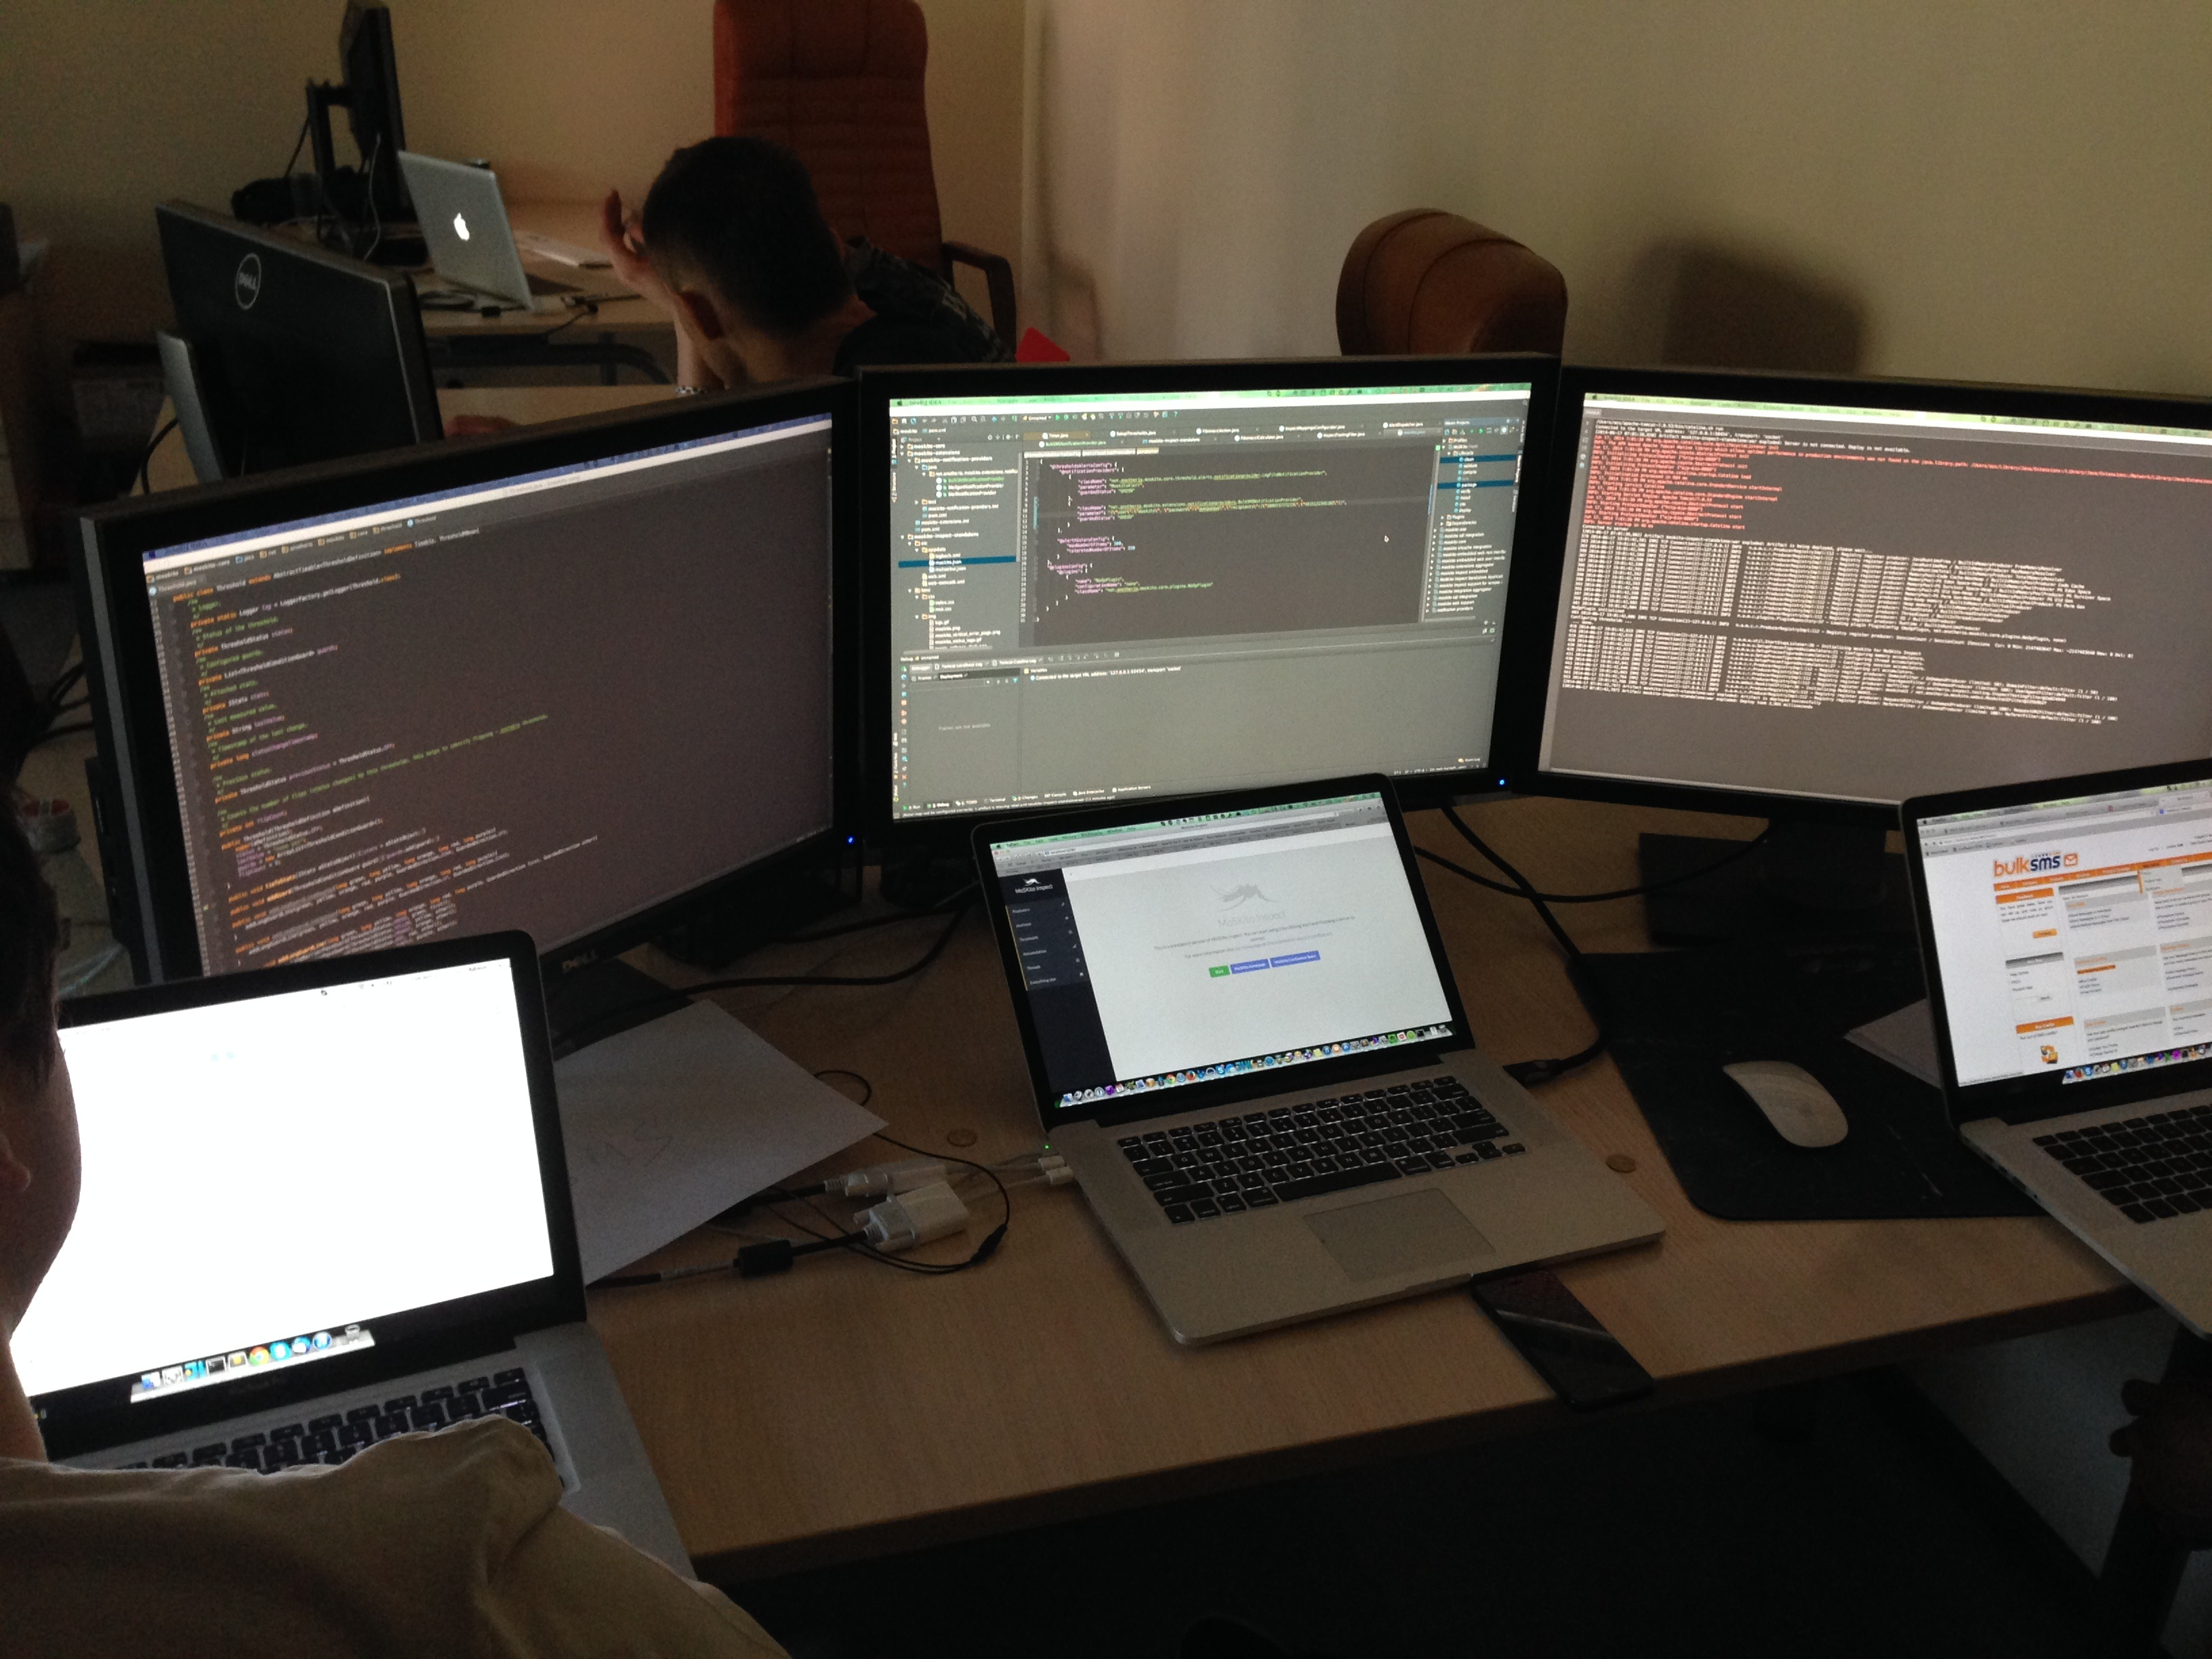 TheWorkingPlaceOfAMoskitoDeveloper